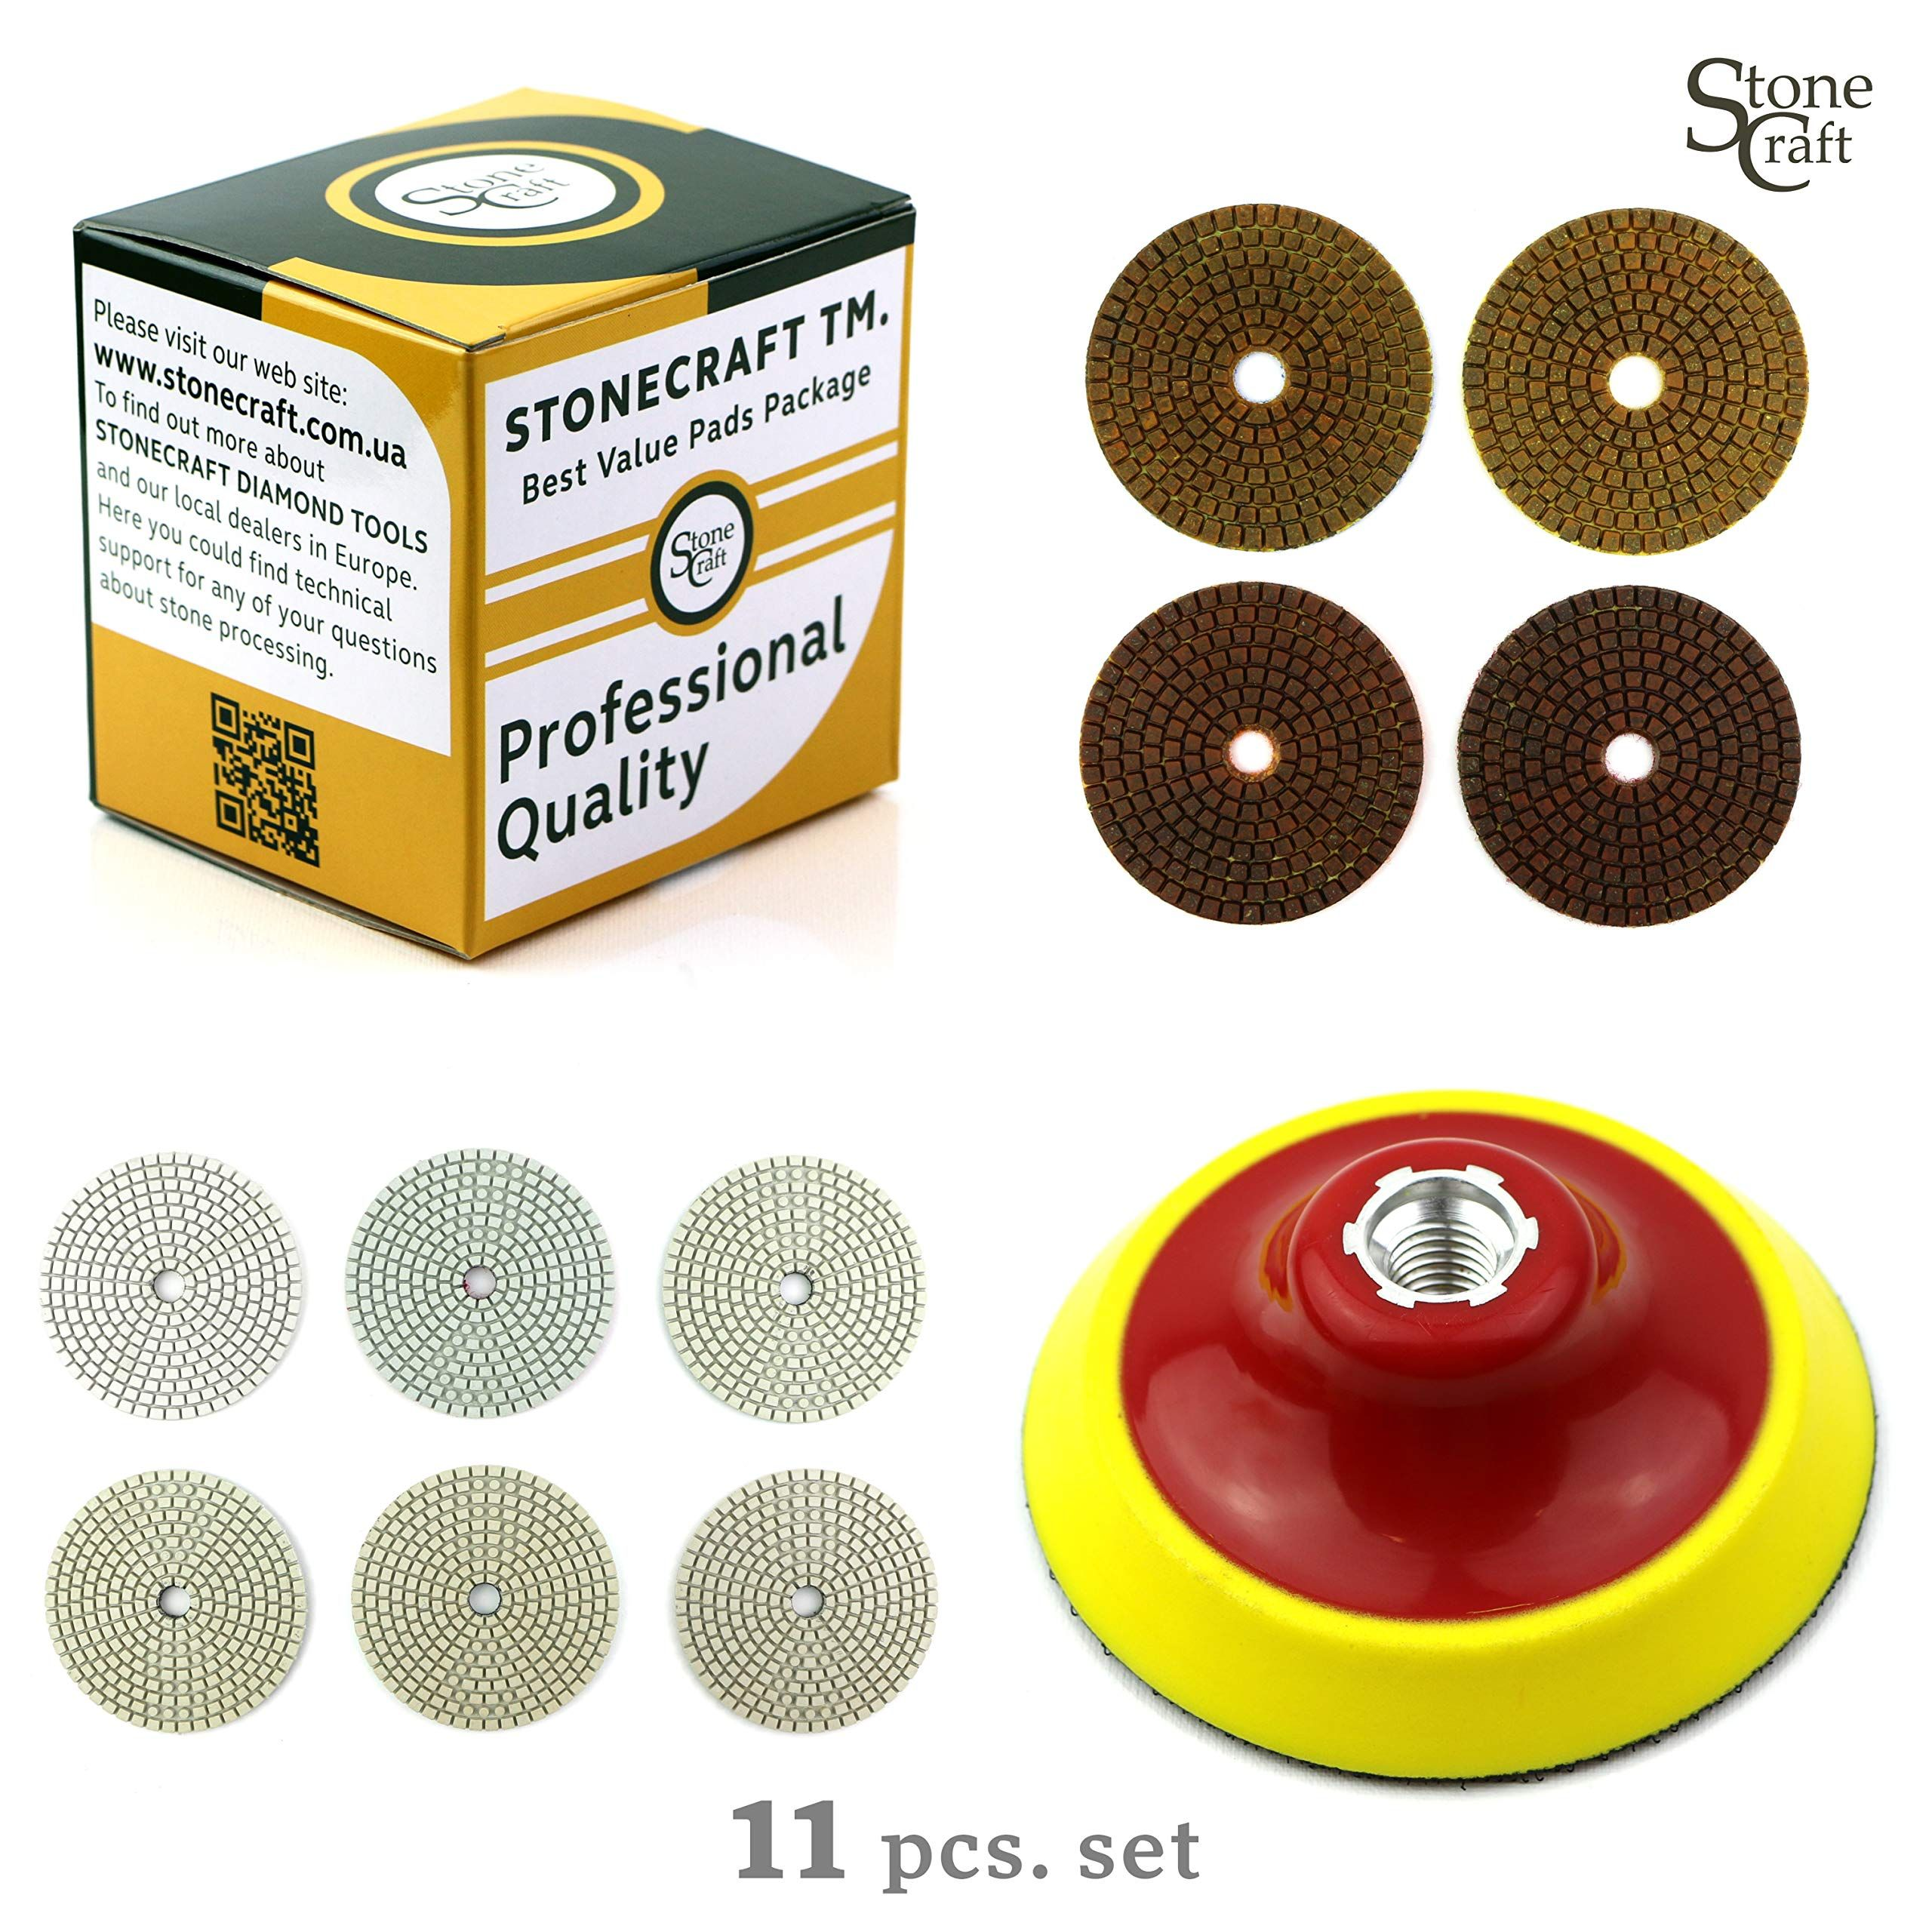 Foam Backing Pad for Granite Marble Concrete 4 inch Wet//Dry 11 Piece Set with White Buff StoneCraft Diamond Polishing Pads